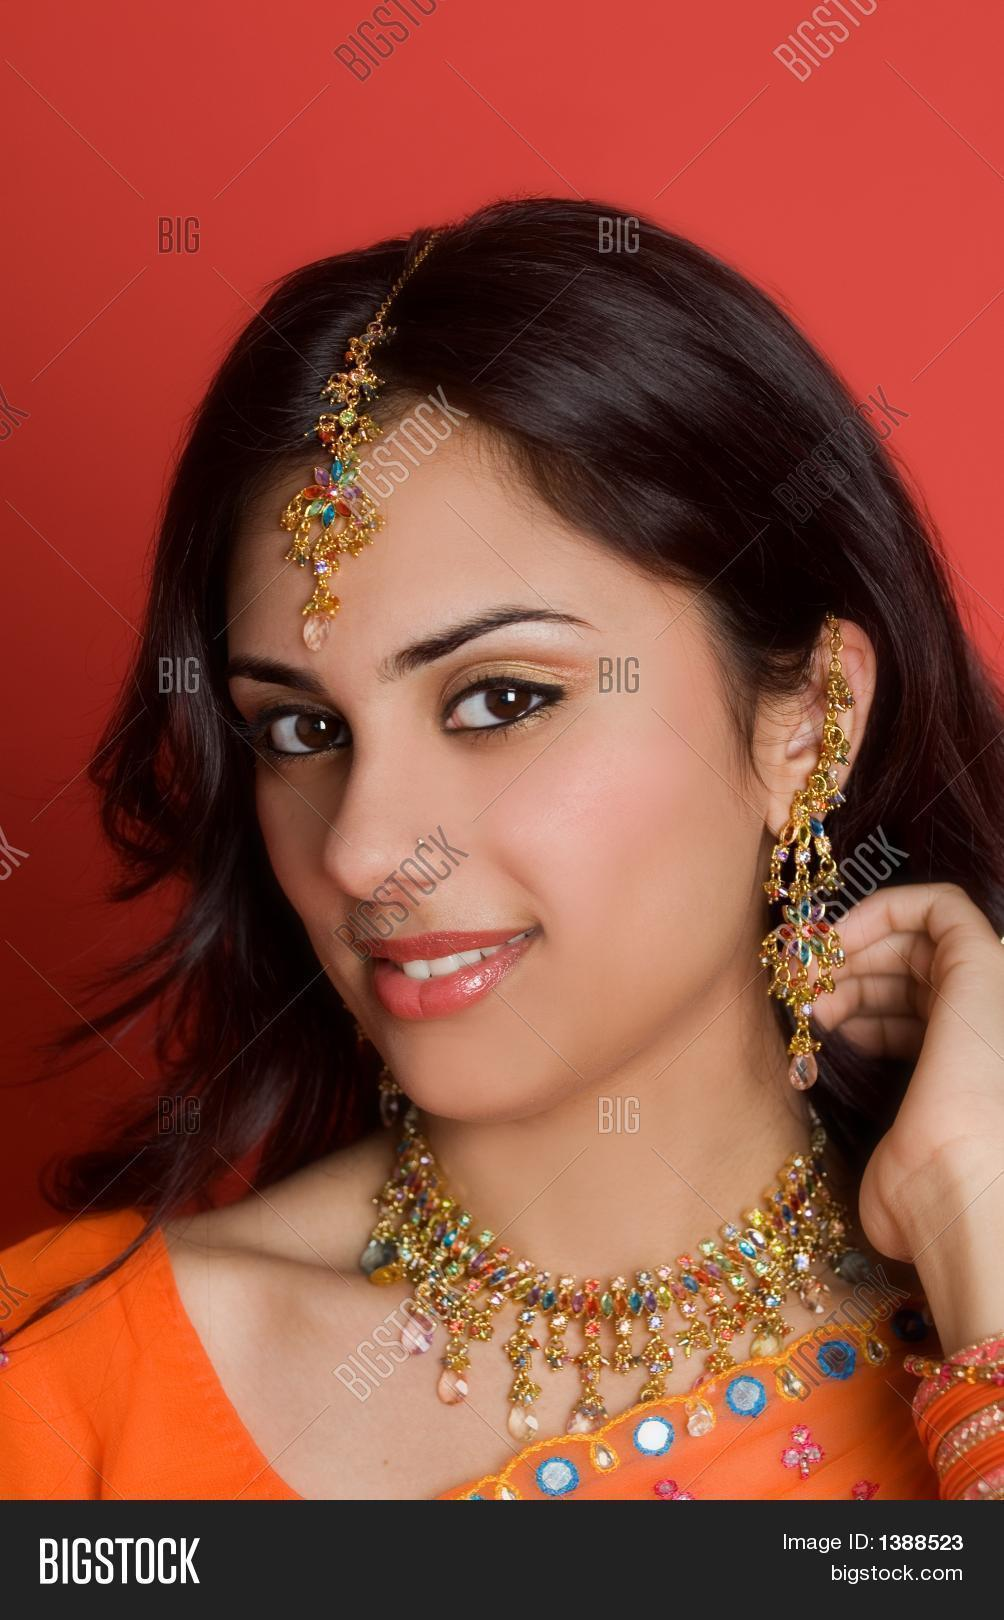 hindu single women in imbler Browse profiles & photos of hindu single women try hindu dating from match com join matchcom, the leader in online dating with more dates, more.